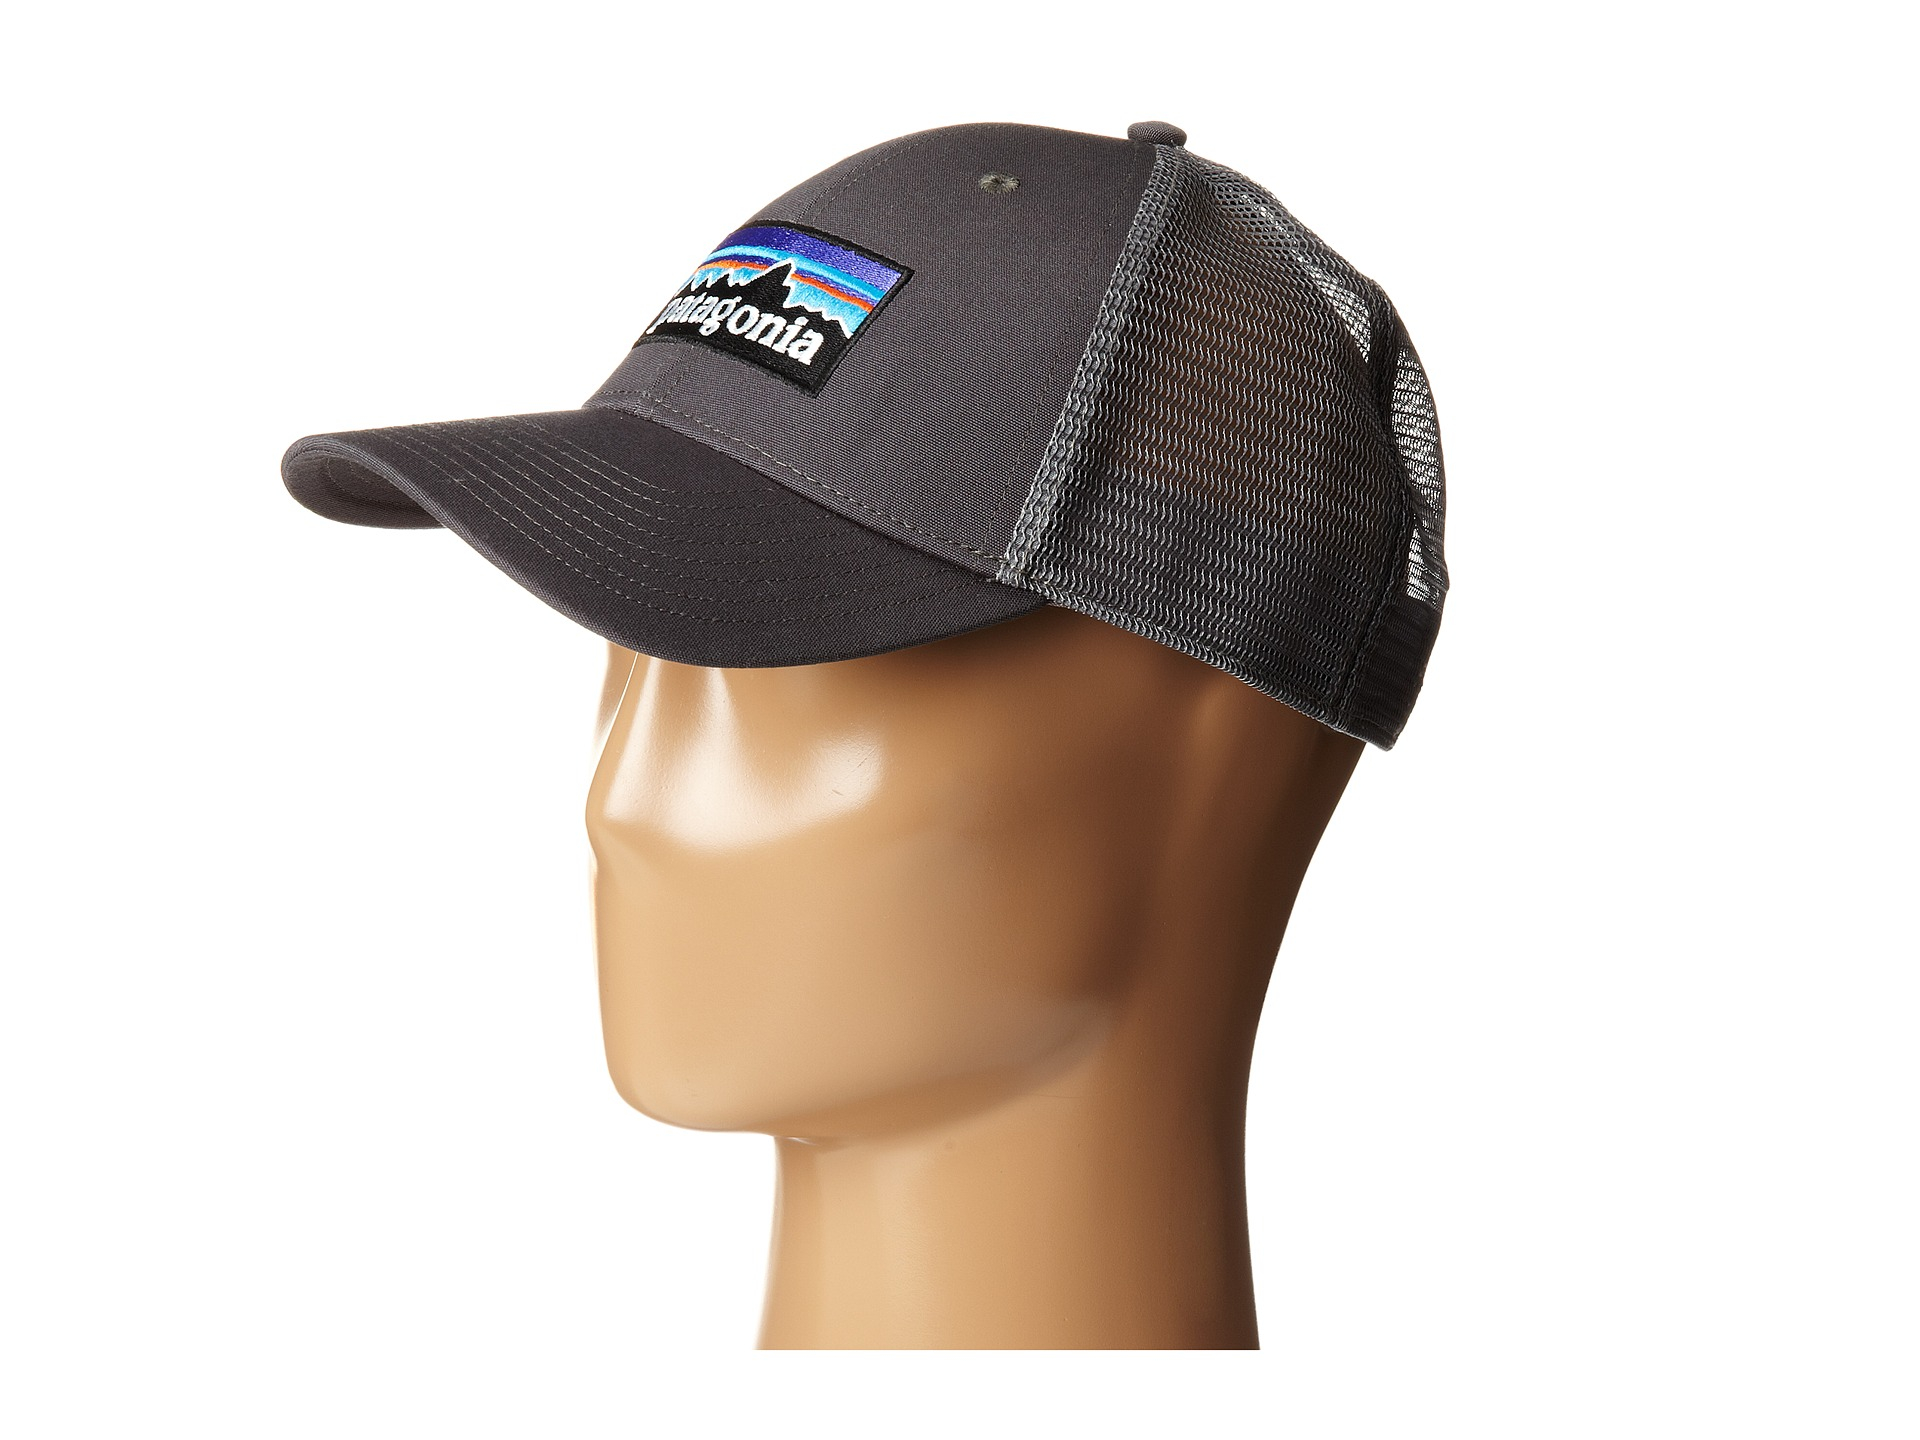 fc24536592407 ... canada lyst patagonia p6 lopro trucker hat in gray for men 482c6 53f51